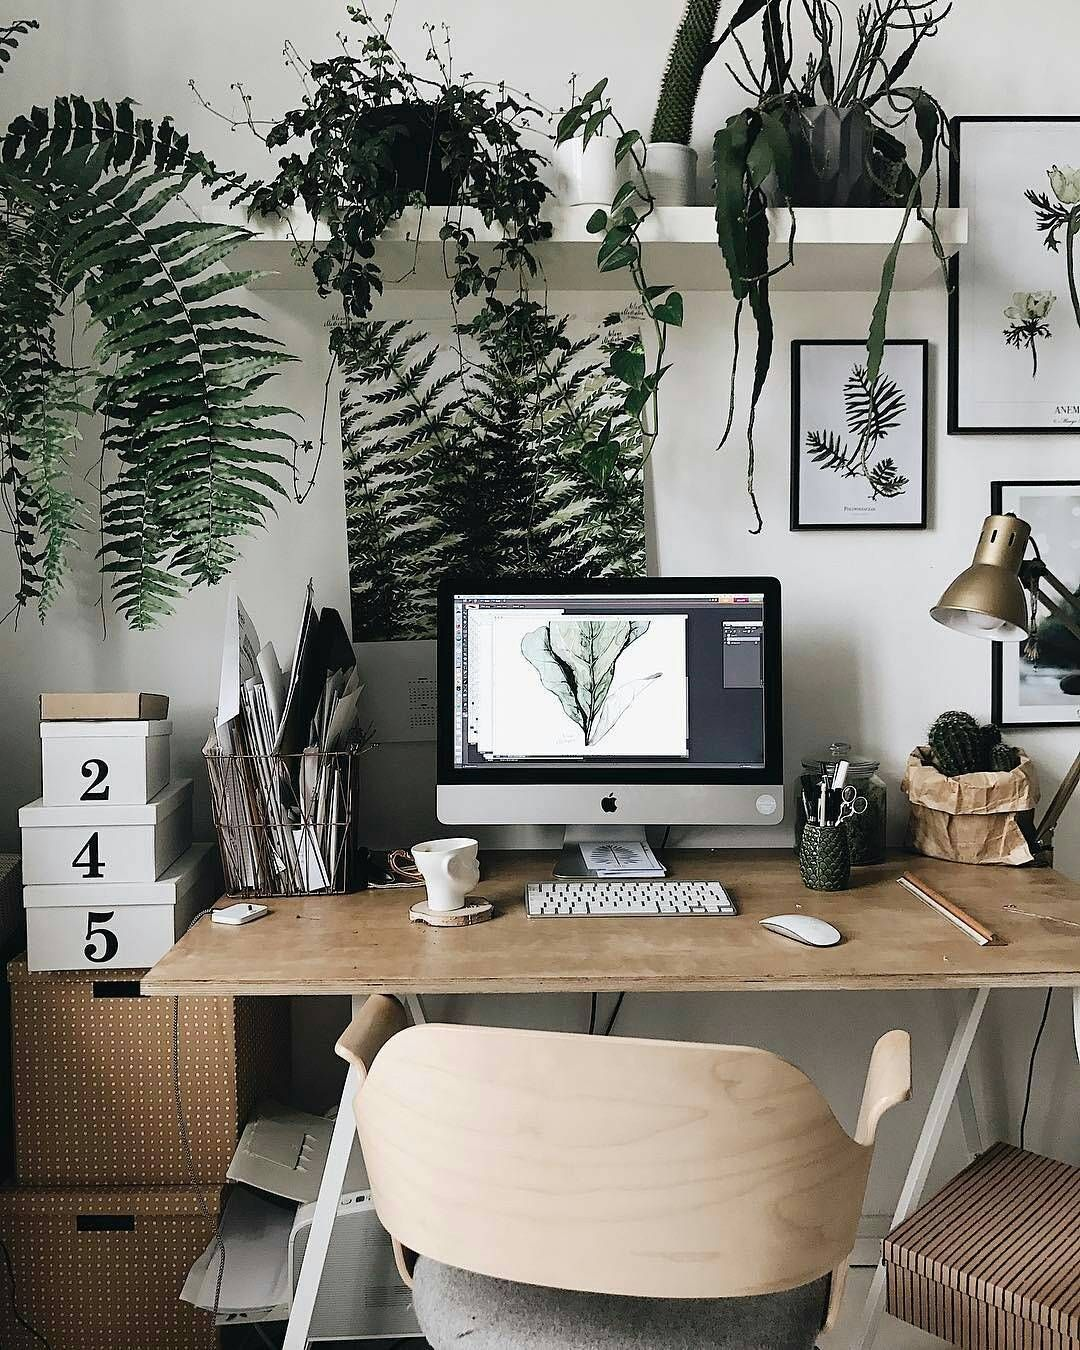 Photo of Home-Office: 3 Styling-Ideen für den Arbeitsplatz | ELLE